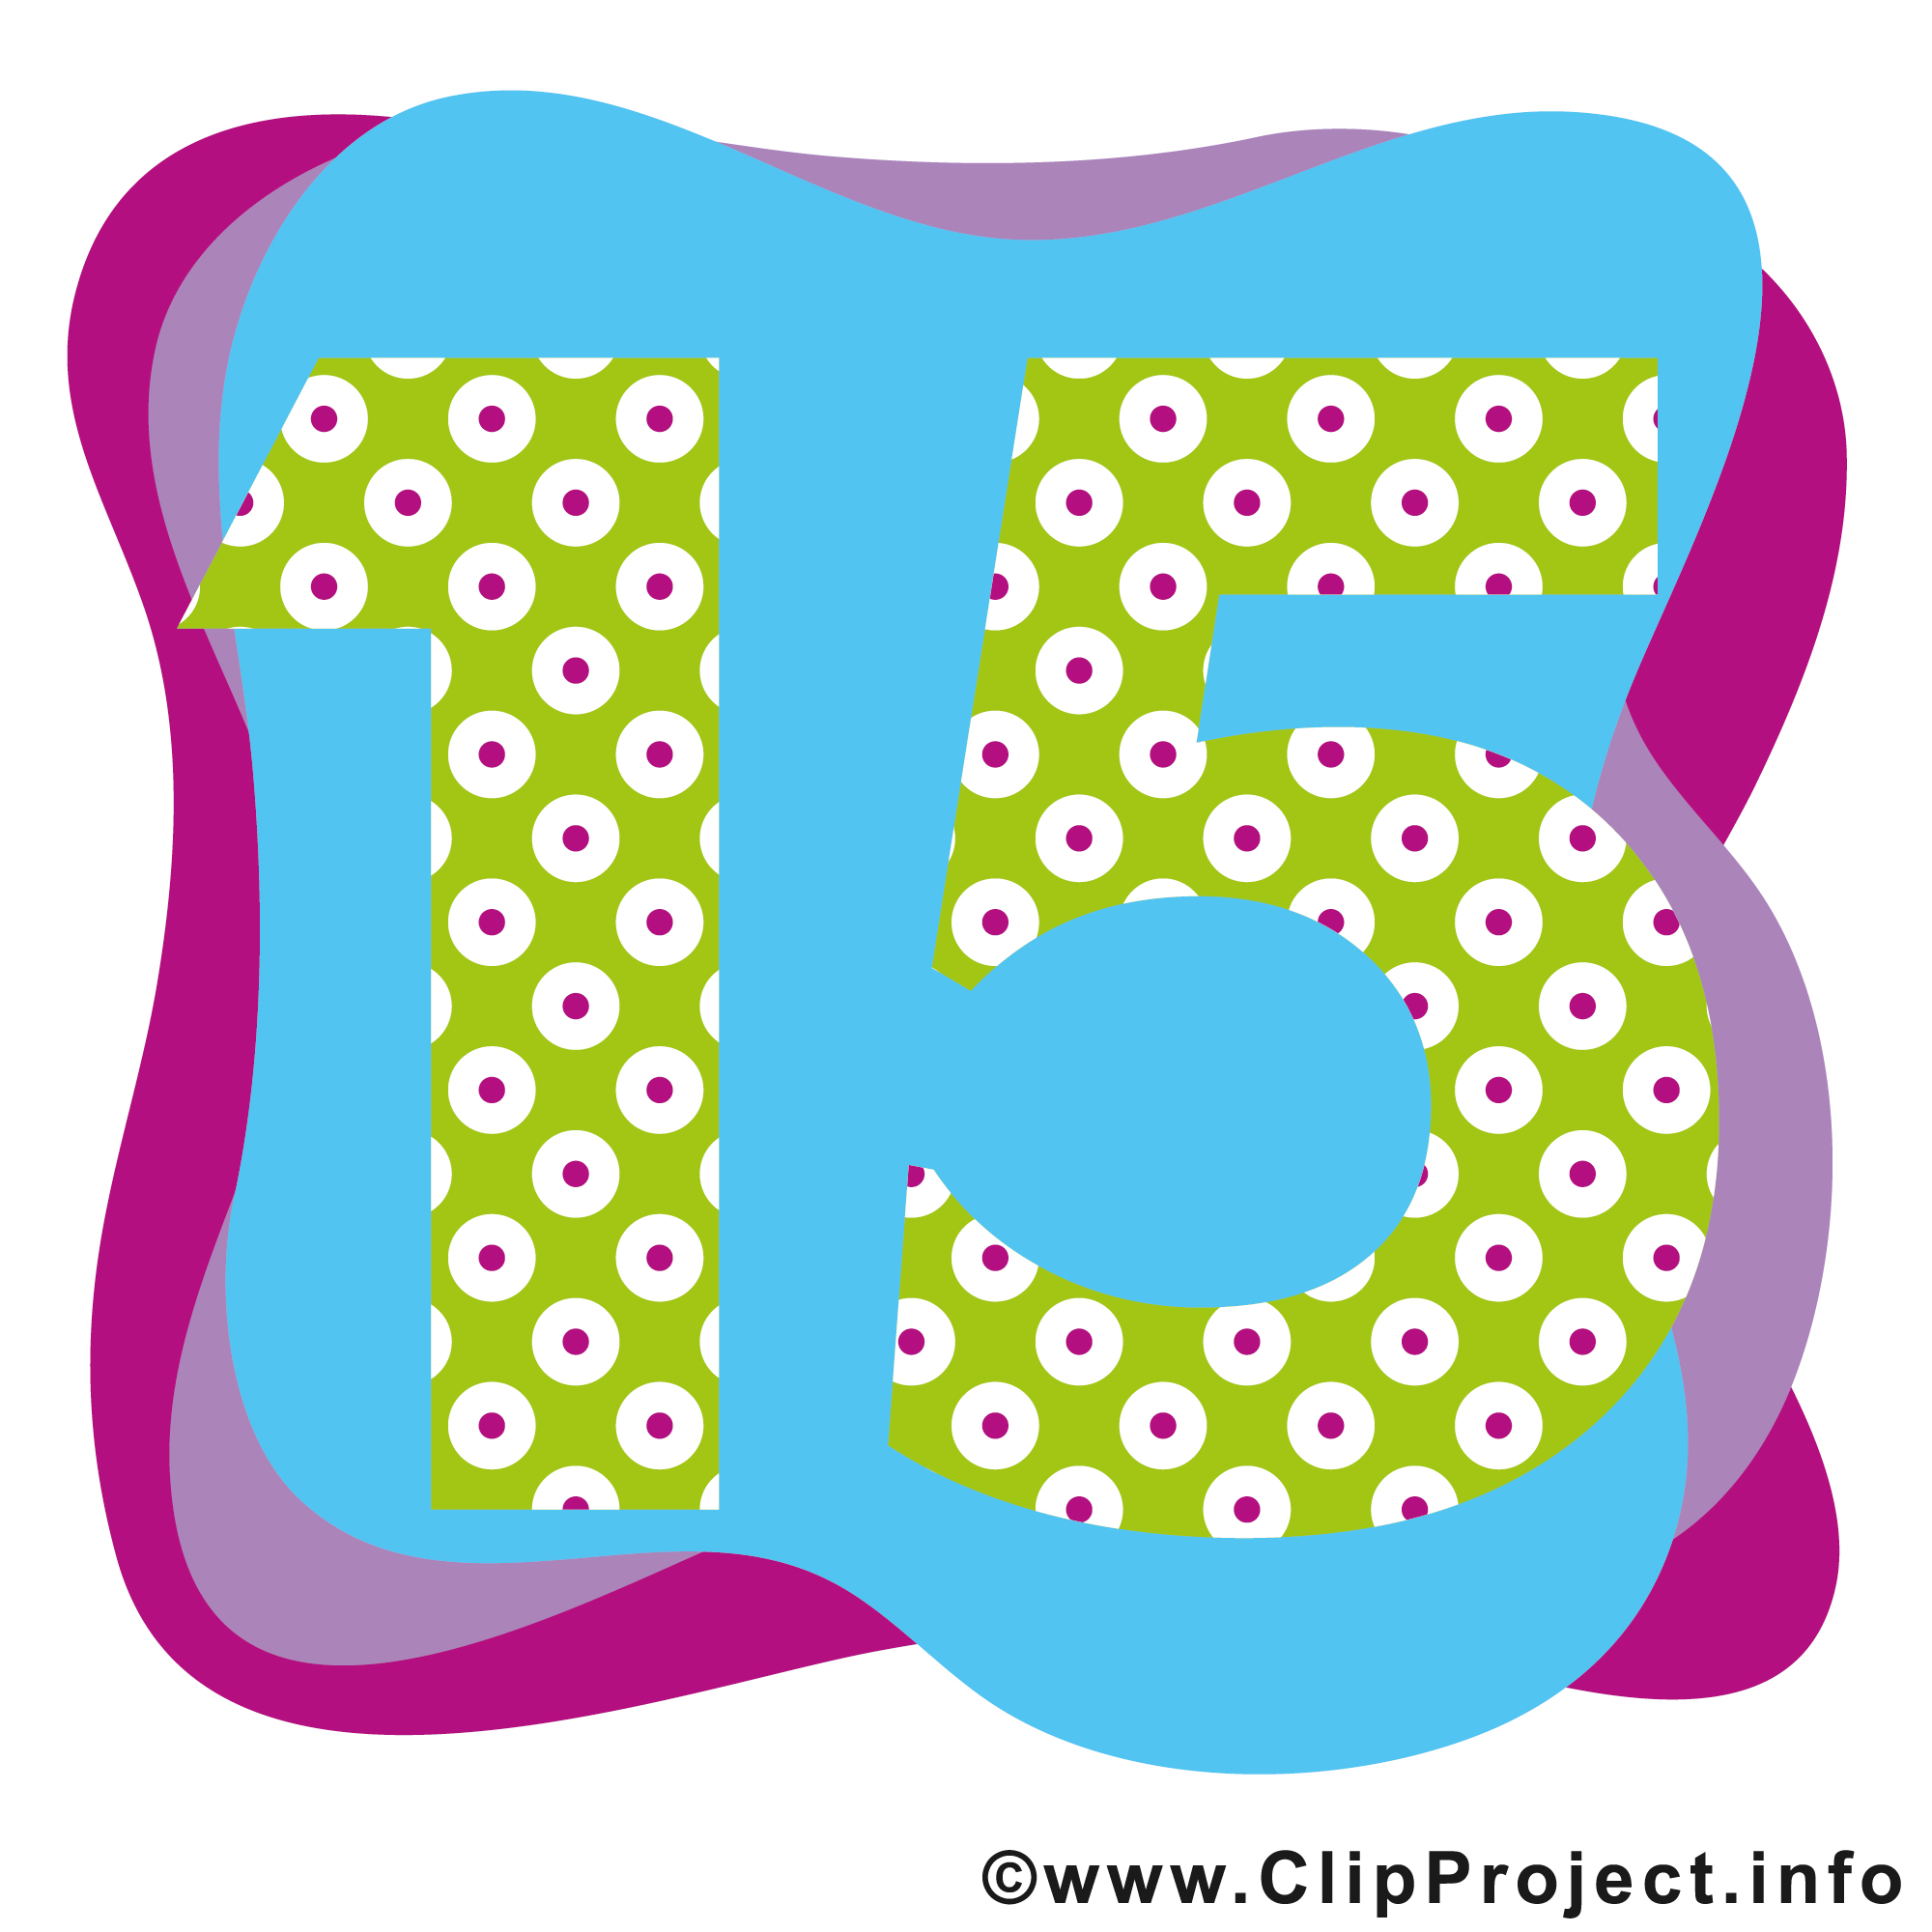 15 clipart.